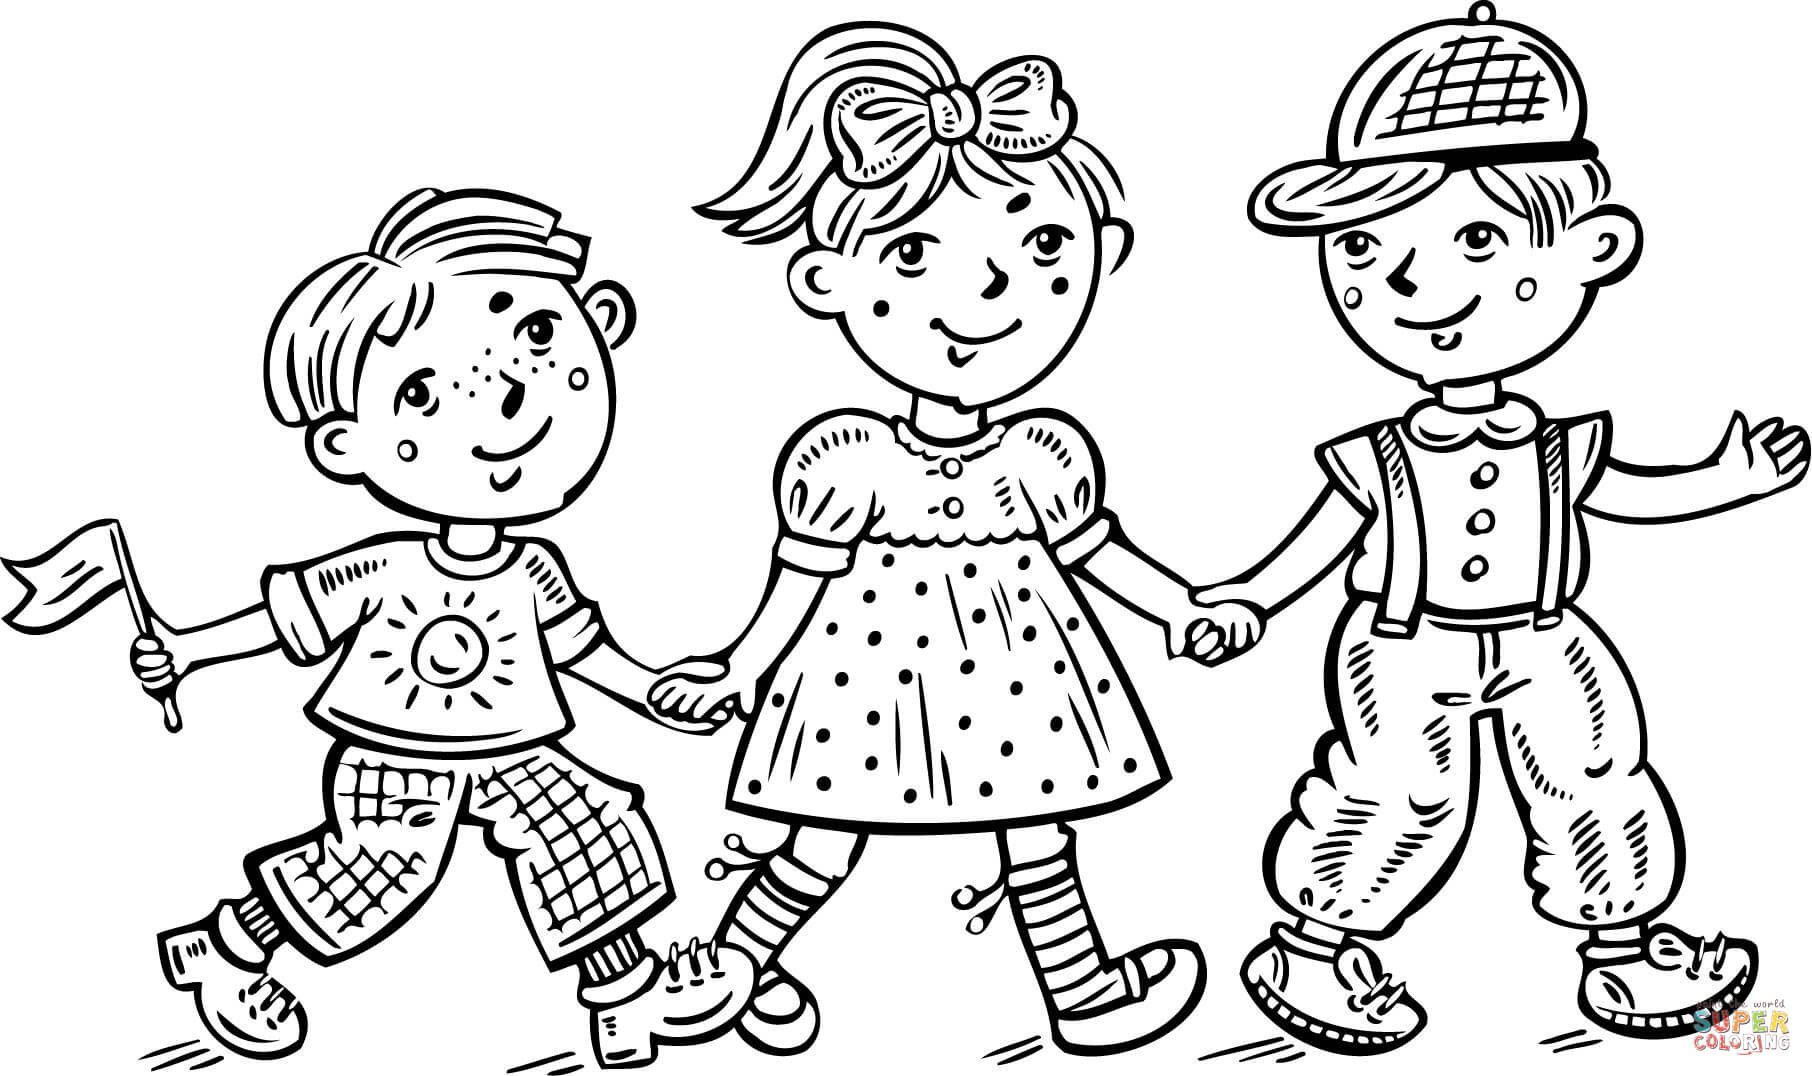 Best ideas about Coloring Pages For Girls No Boys . Save or Pin Children Boys and a Girl Celebrating coloring page Now.